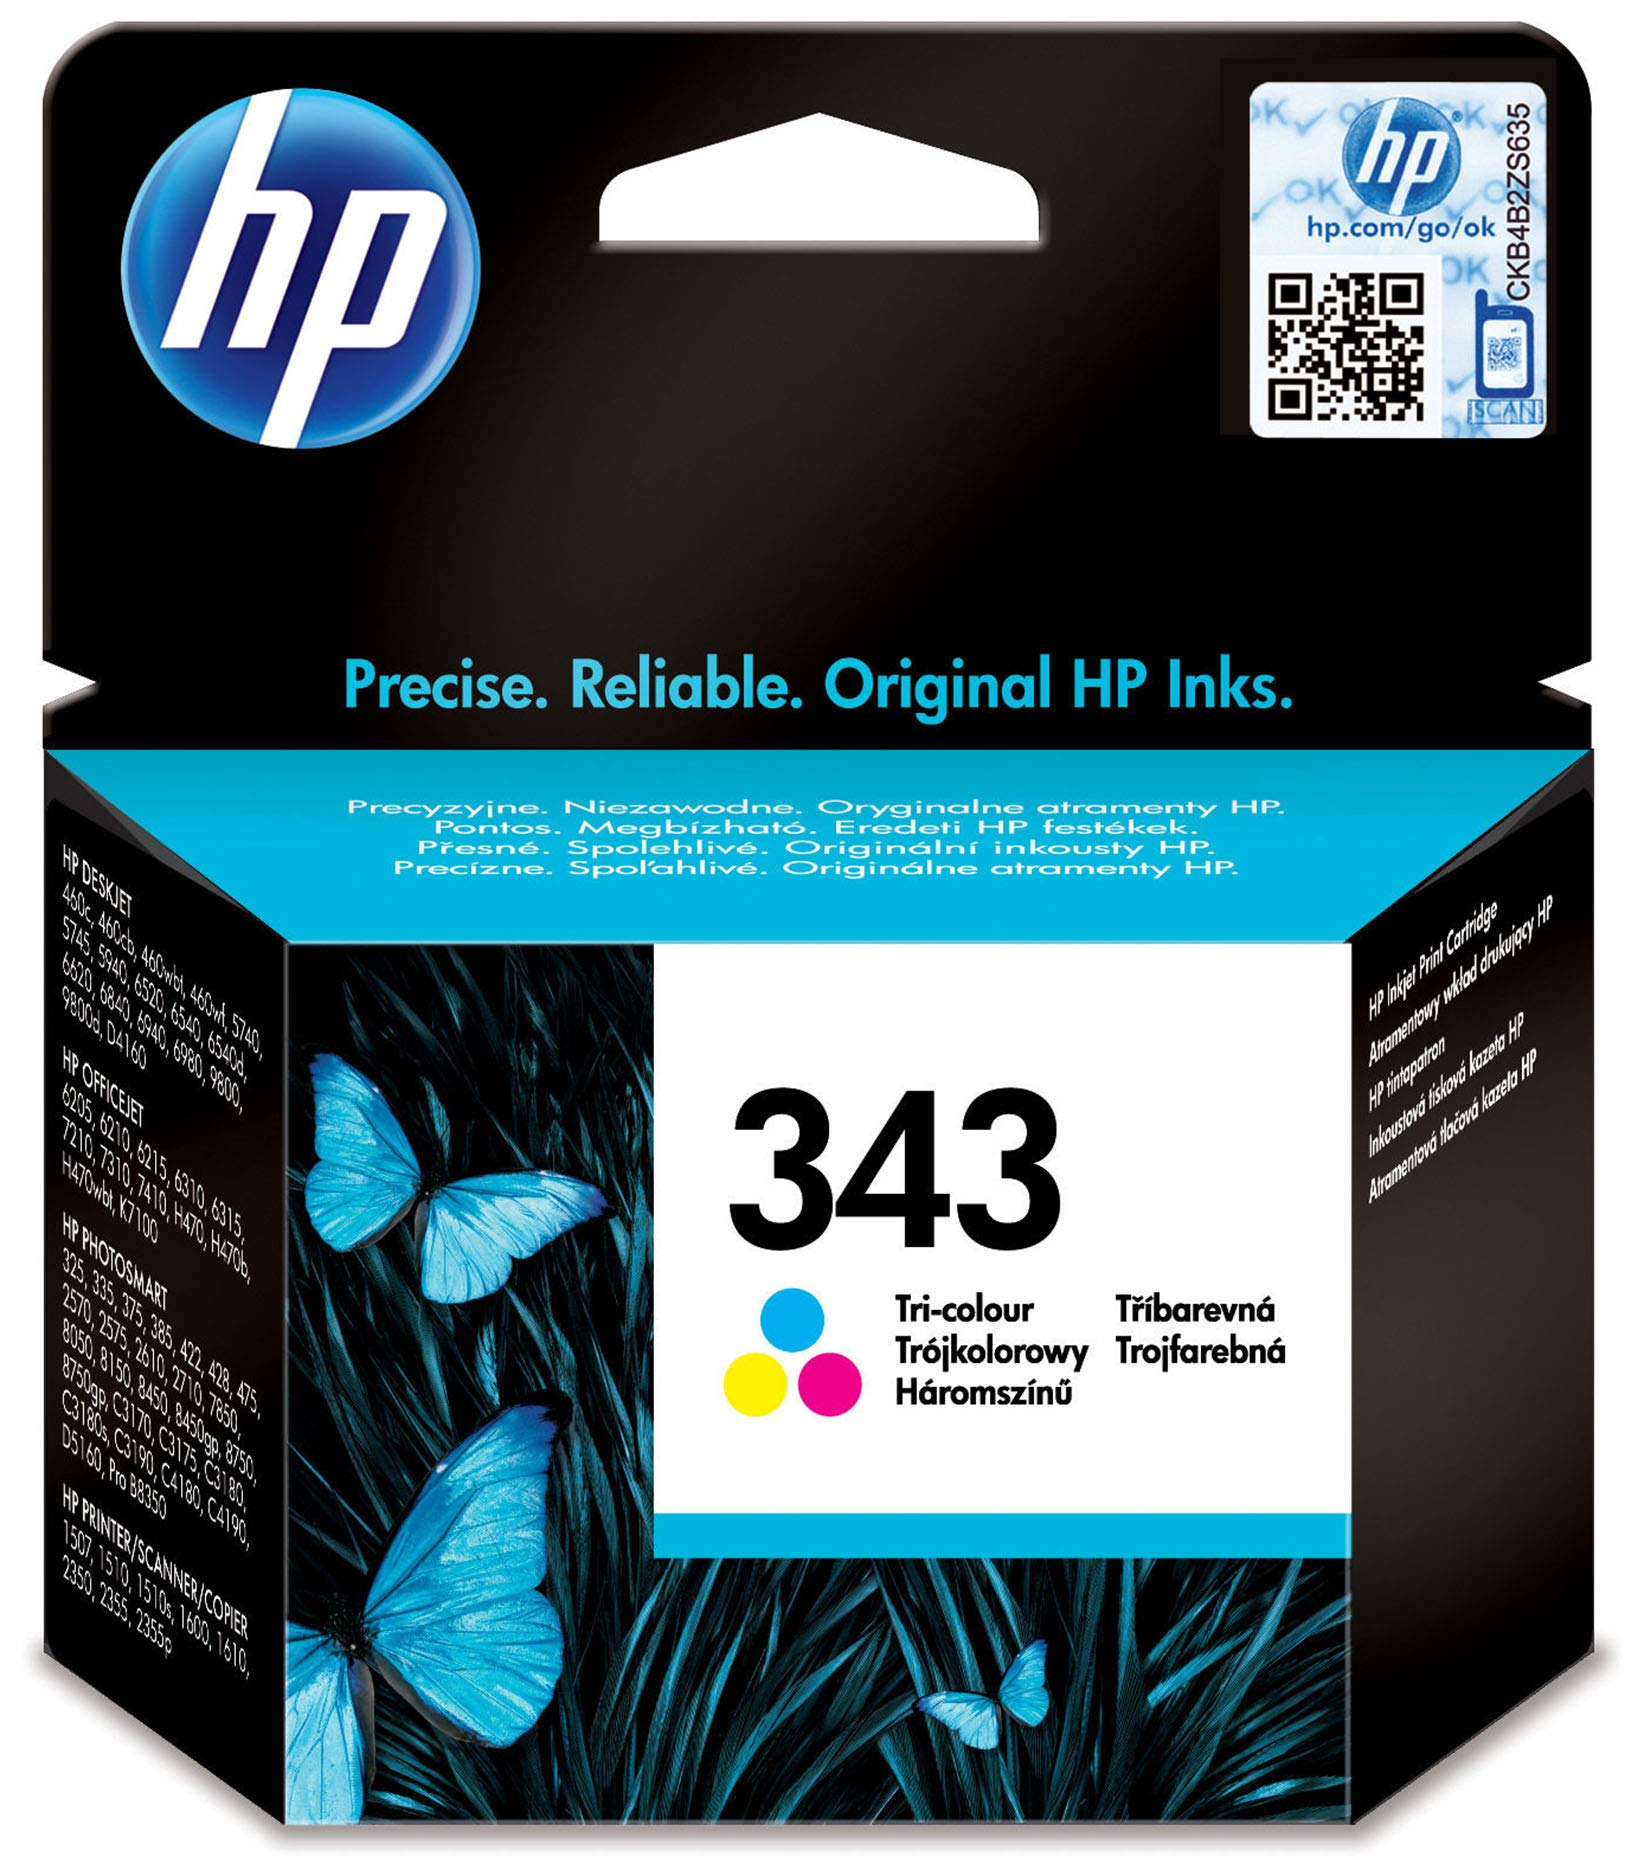 HP C8766EE 343 Original Ink Cartridge, Tri-color, Single Pack